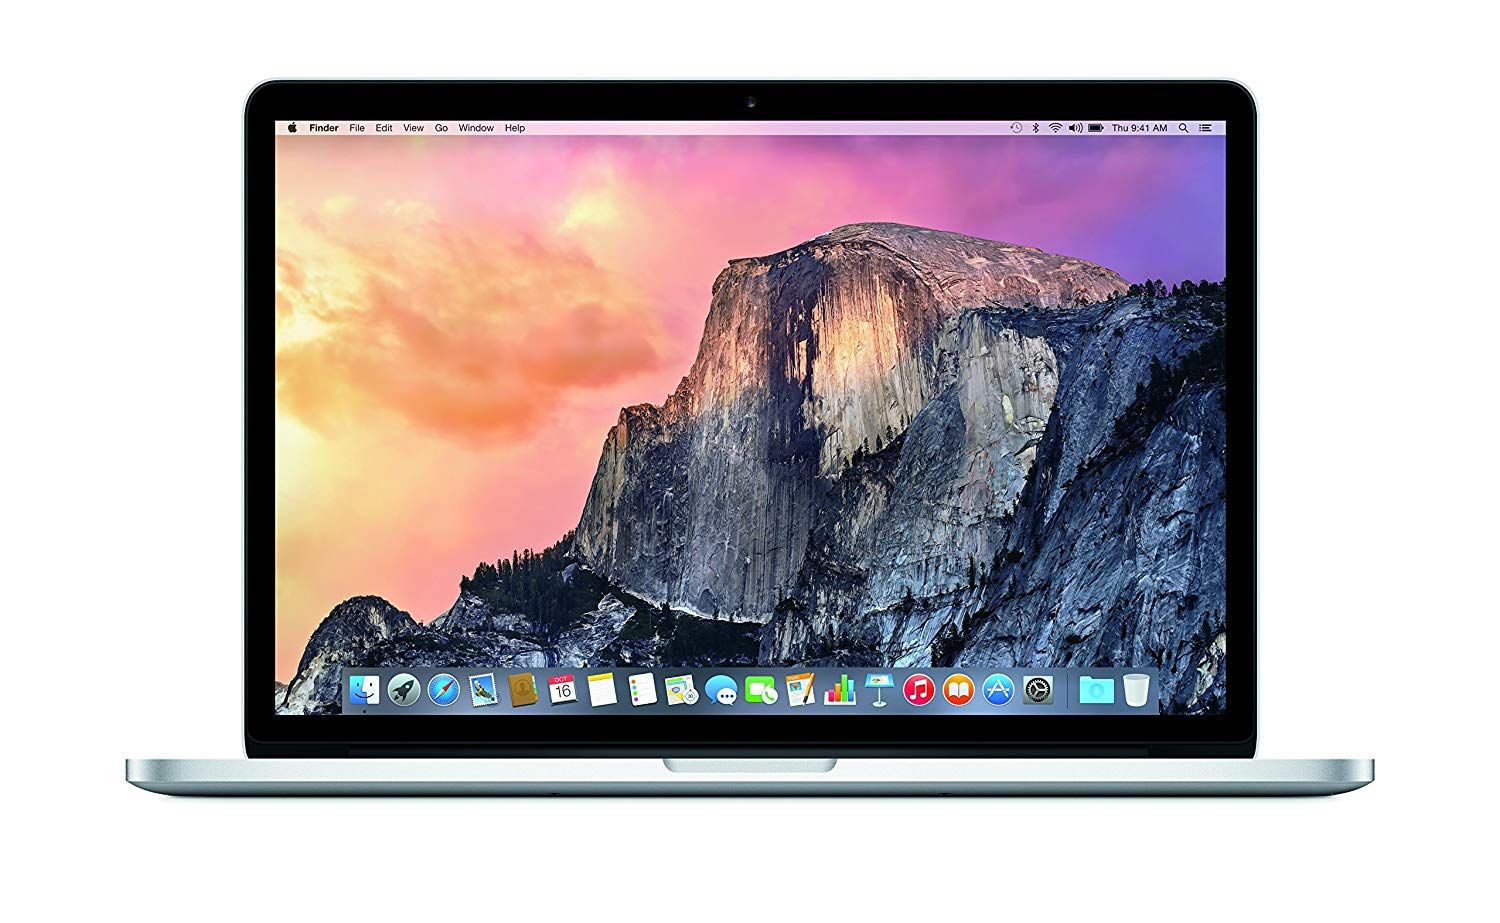 Apple Macbook Pro with Retina 15 Inch Display I7 Laptop front view